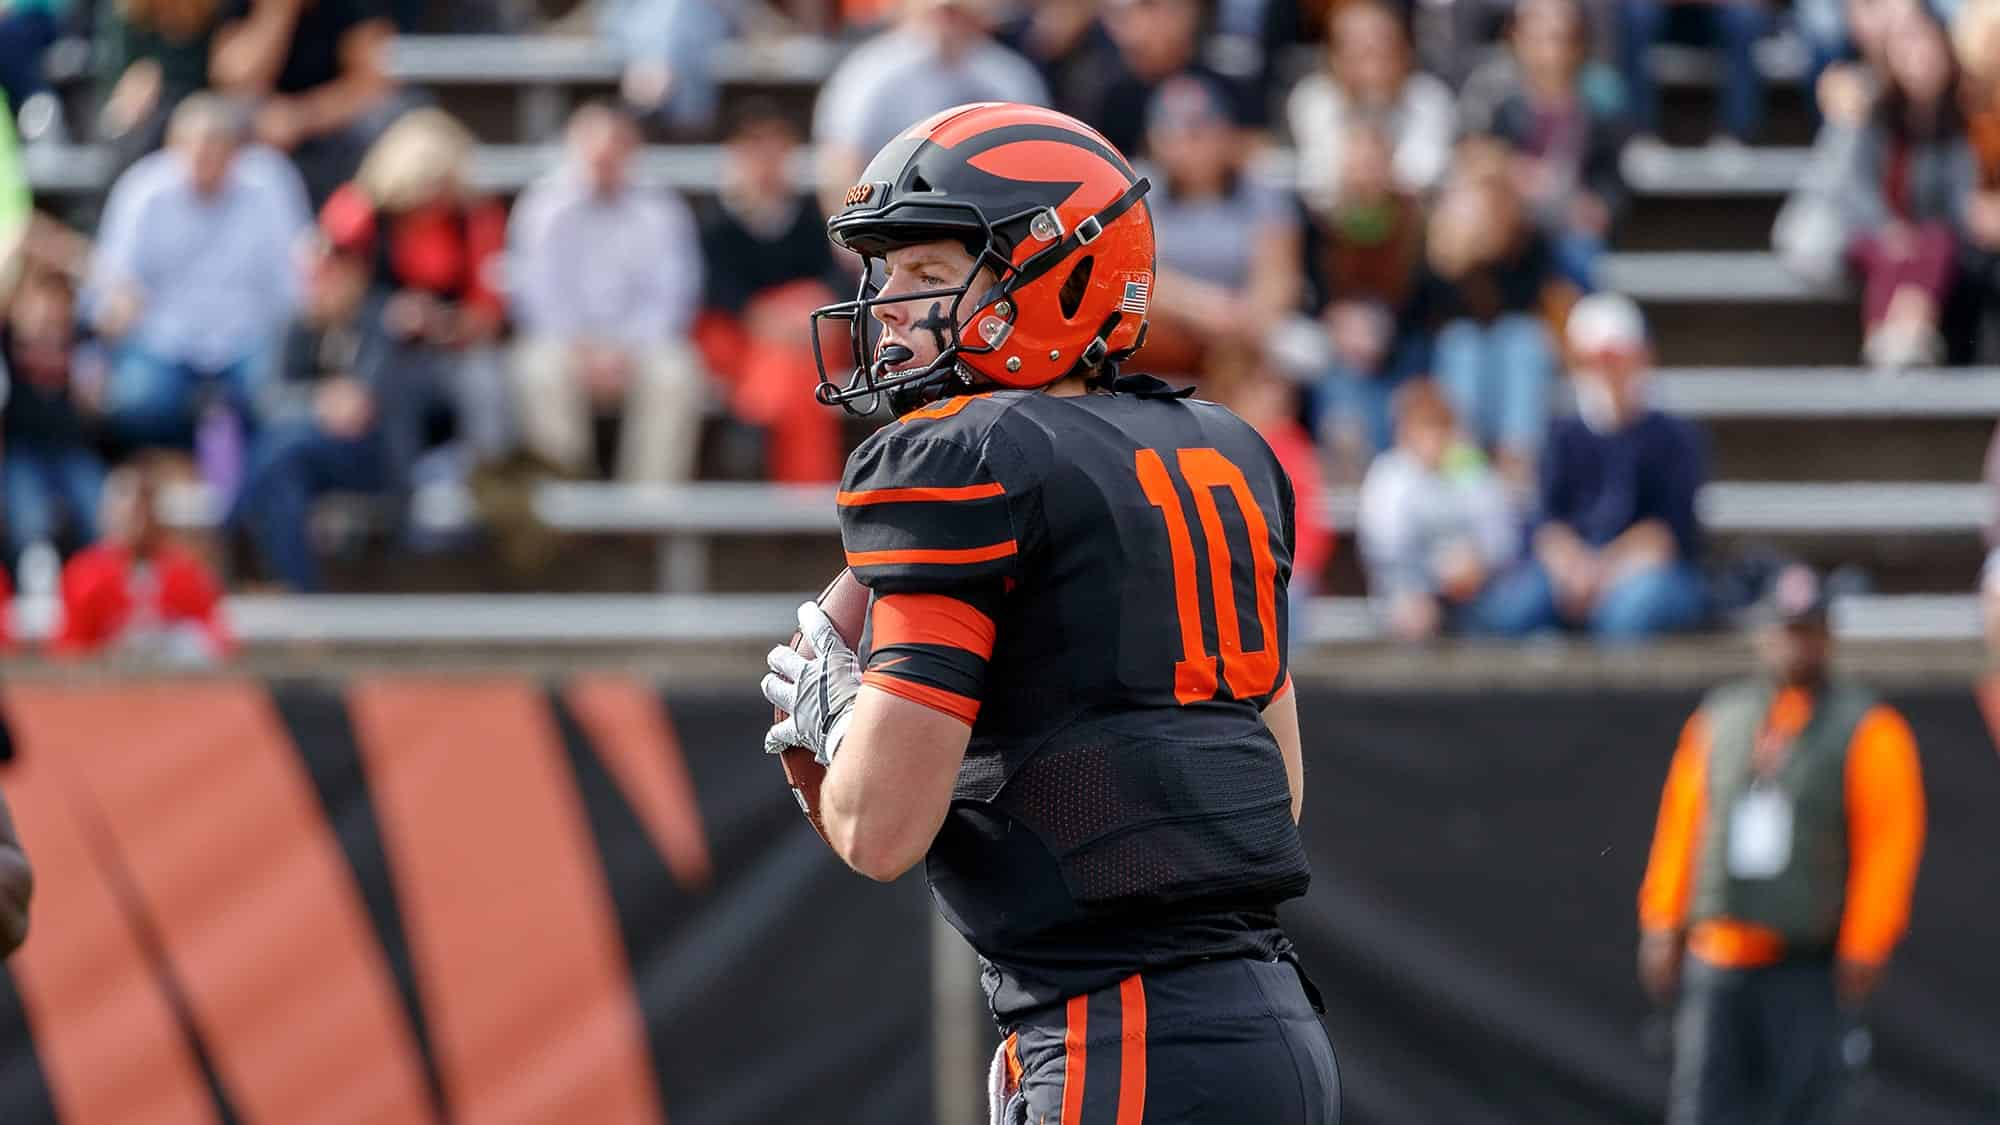 2020 NFL Draft: Princeton and Monmouth Pro Day Reports